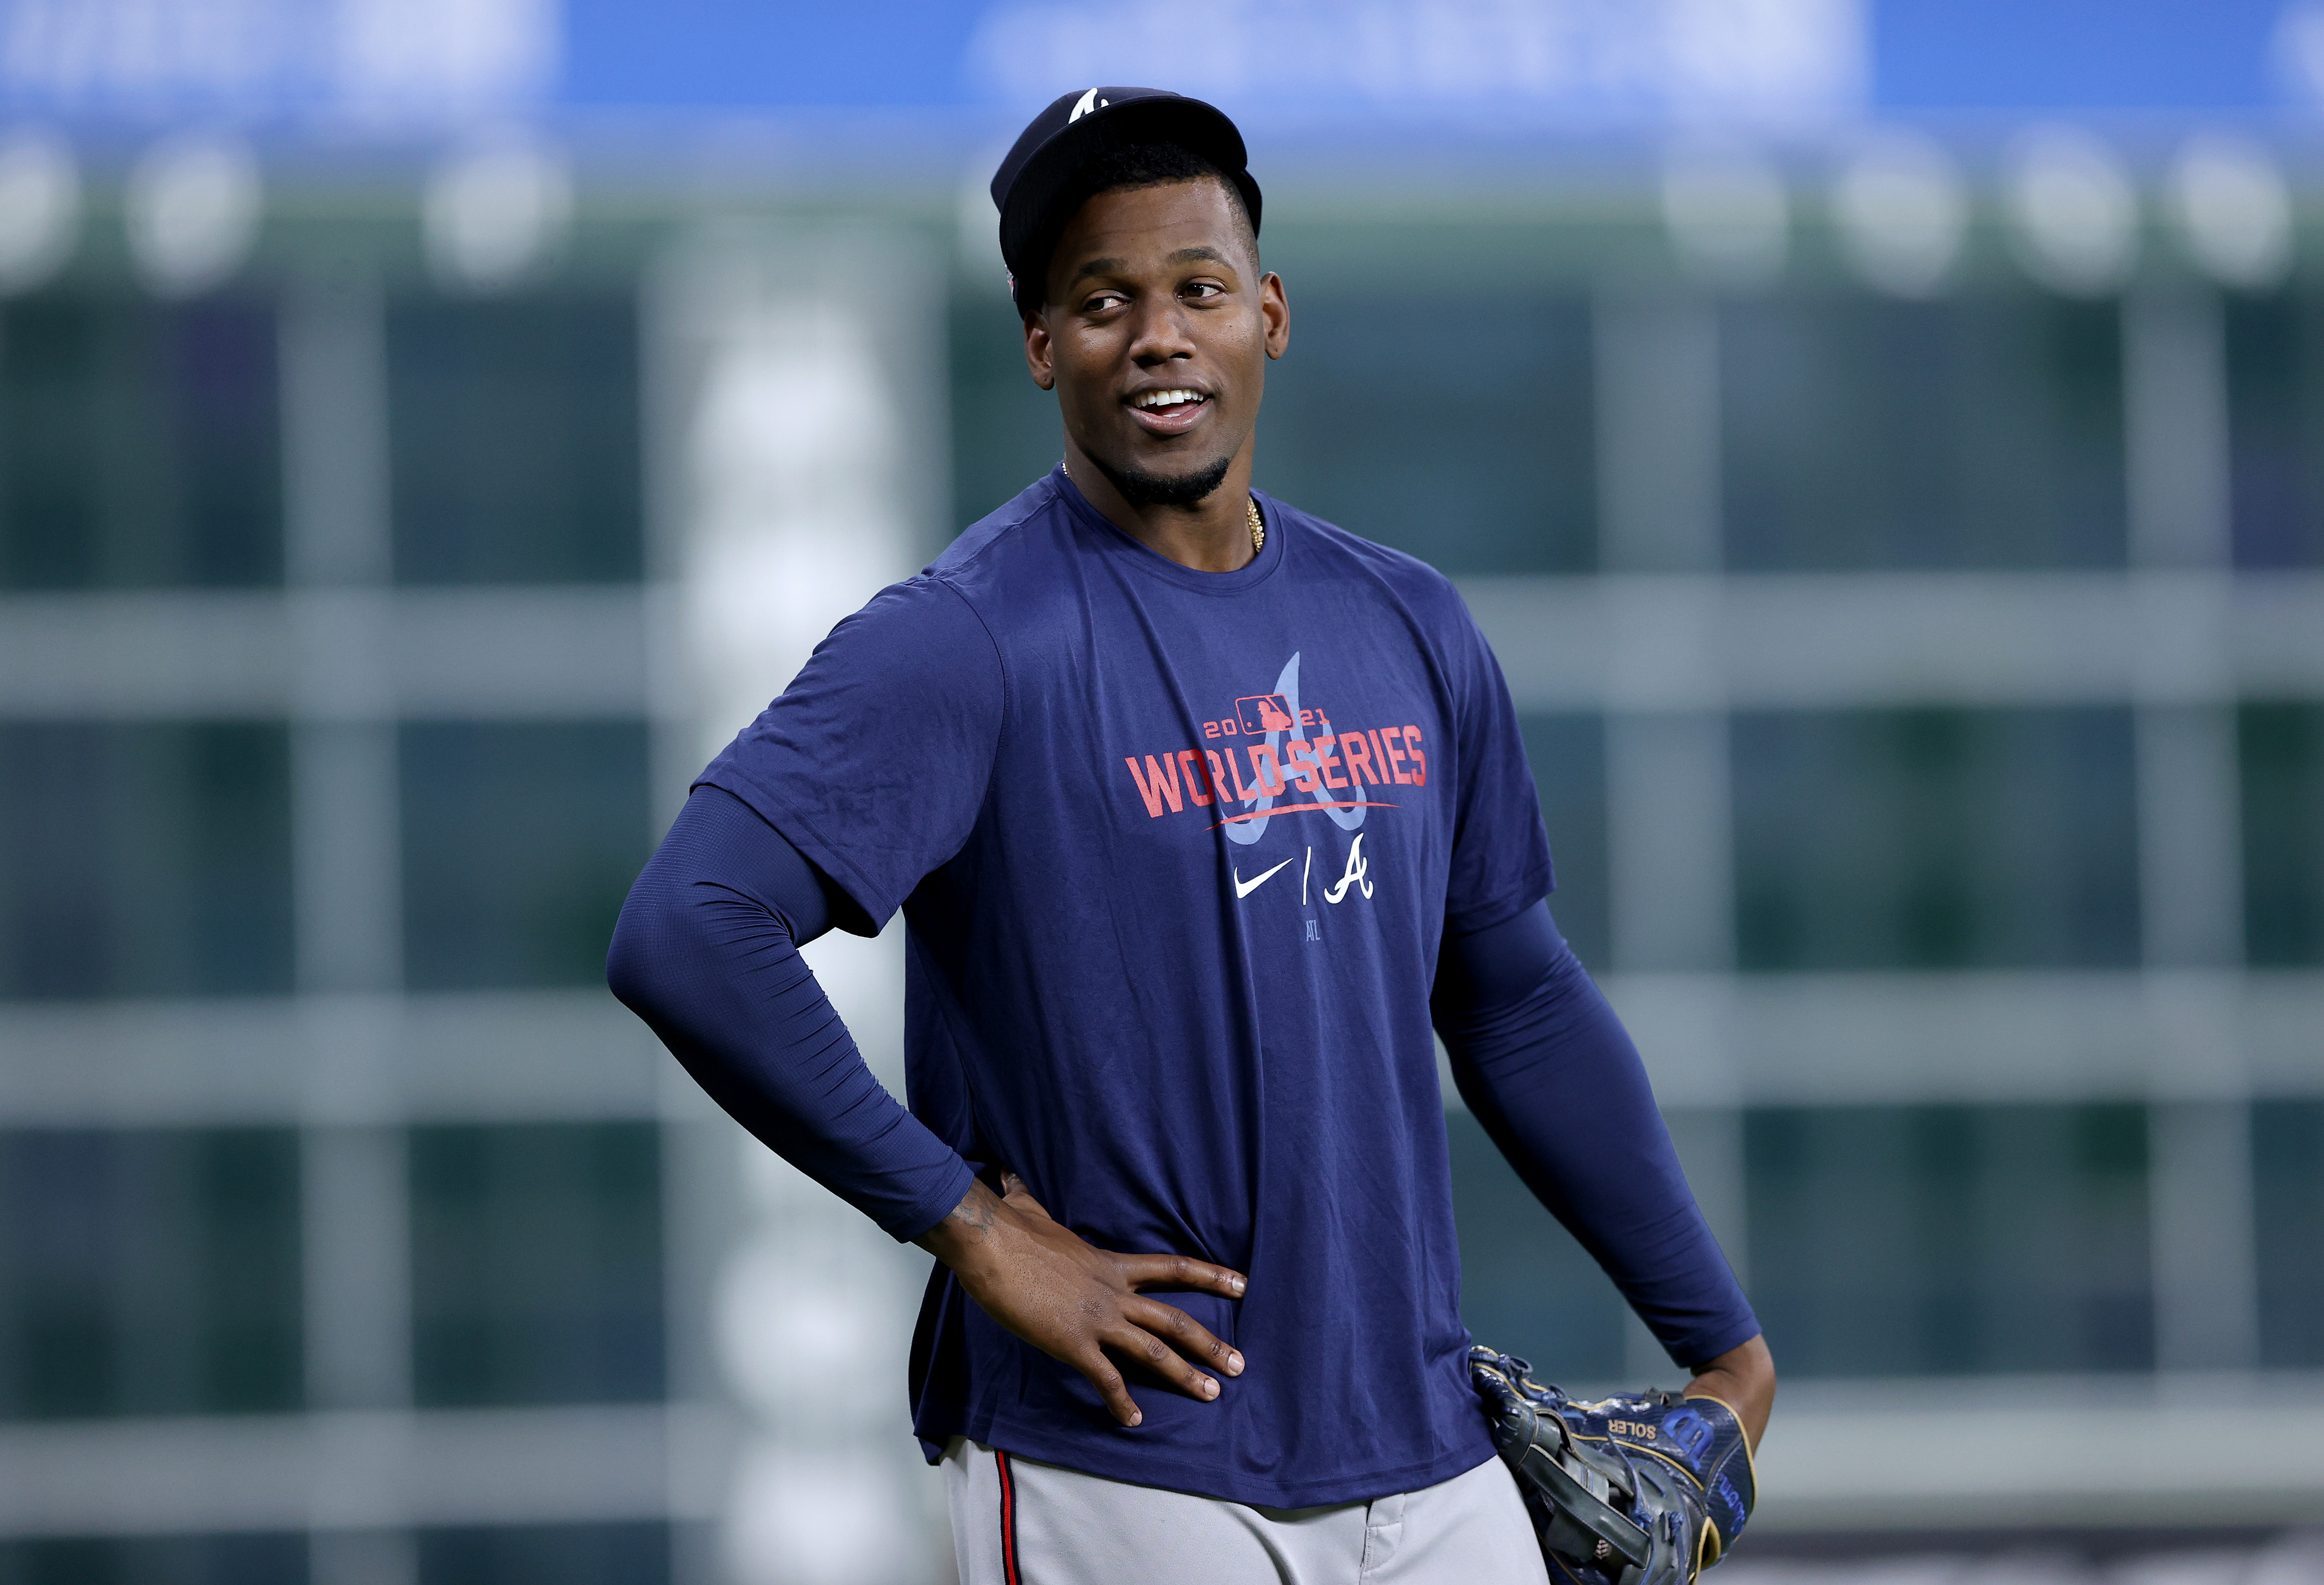 Jorge Soler #12 of the Atlanta Braves warms up during the World Series Workout Day at Minute Maid Park on October 25, 2021 in Houston, Texas.